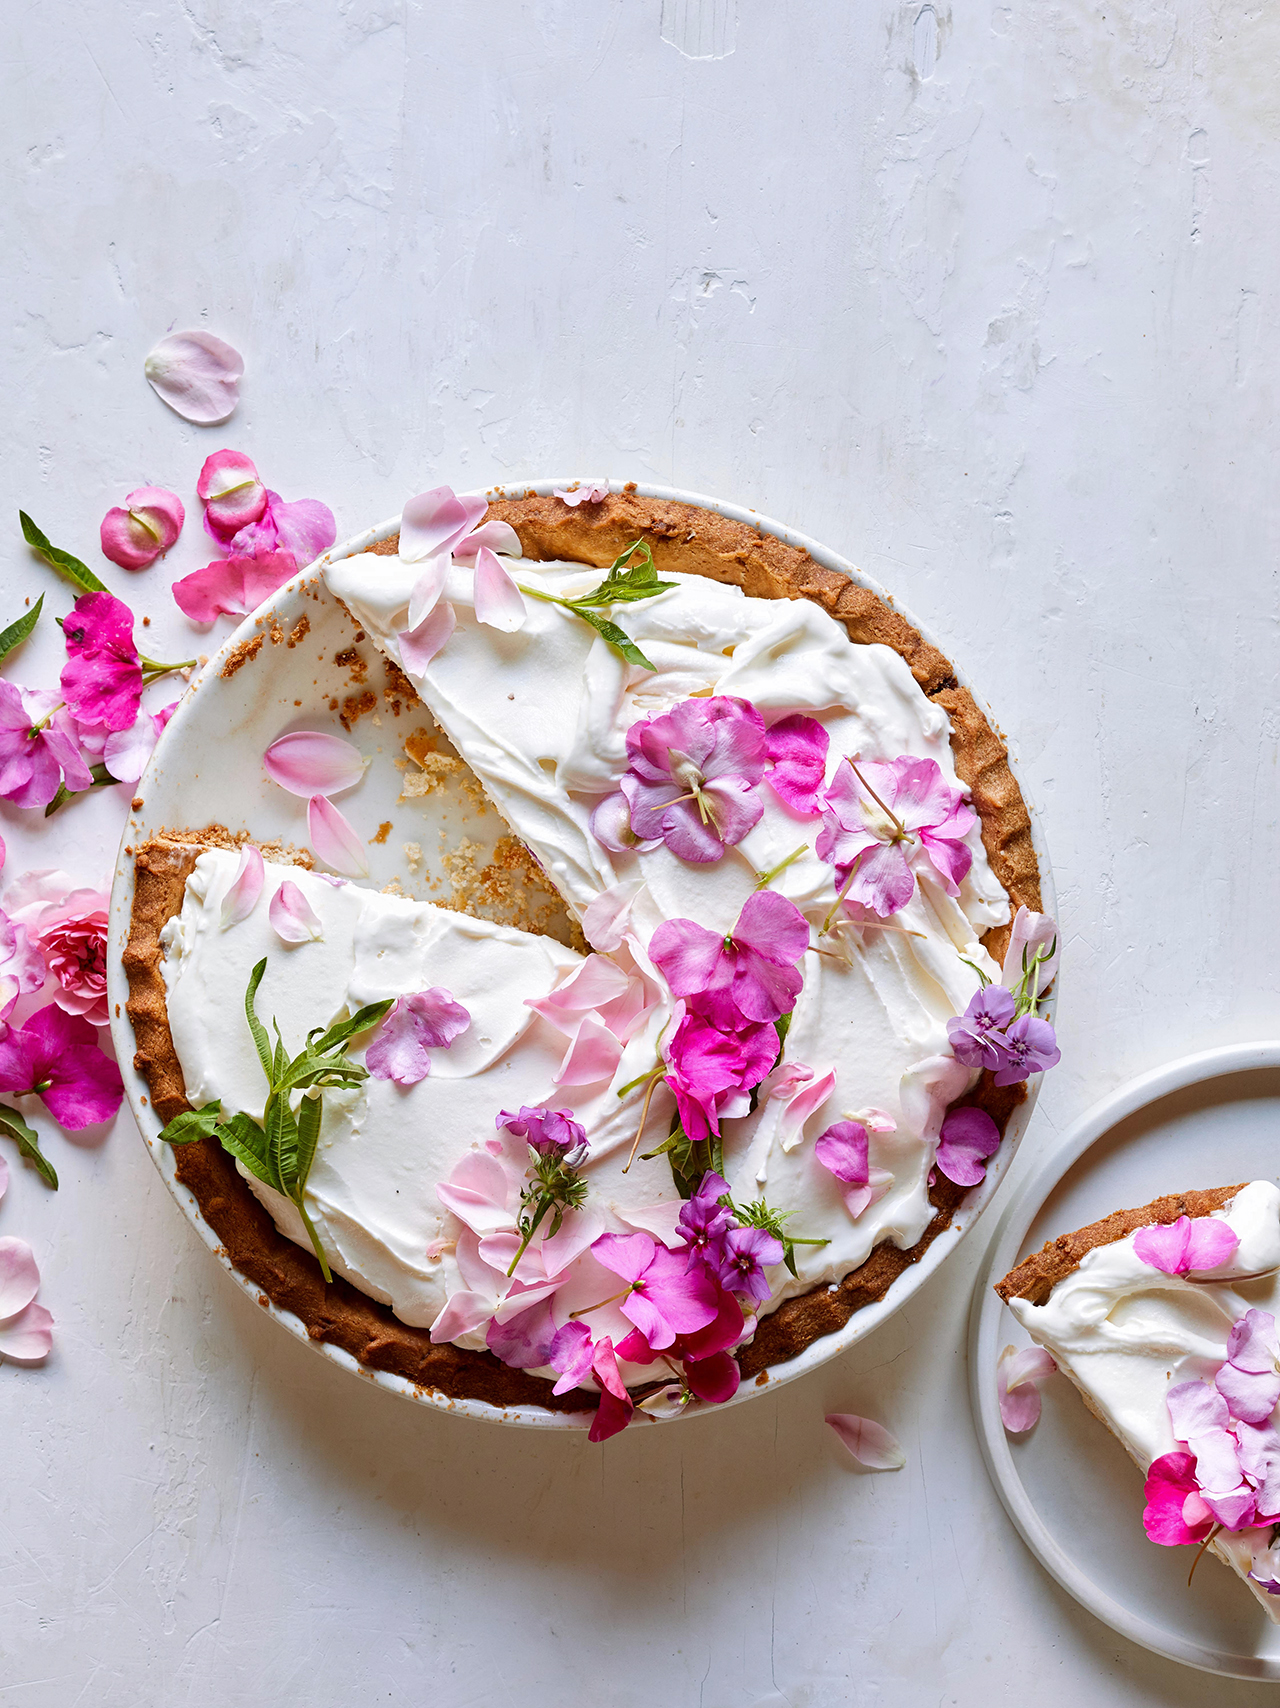 Garden Party Dessert: Lemon Verbena Ice Cream Pie